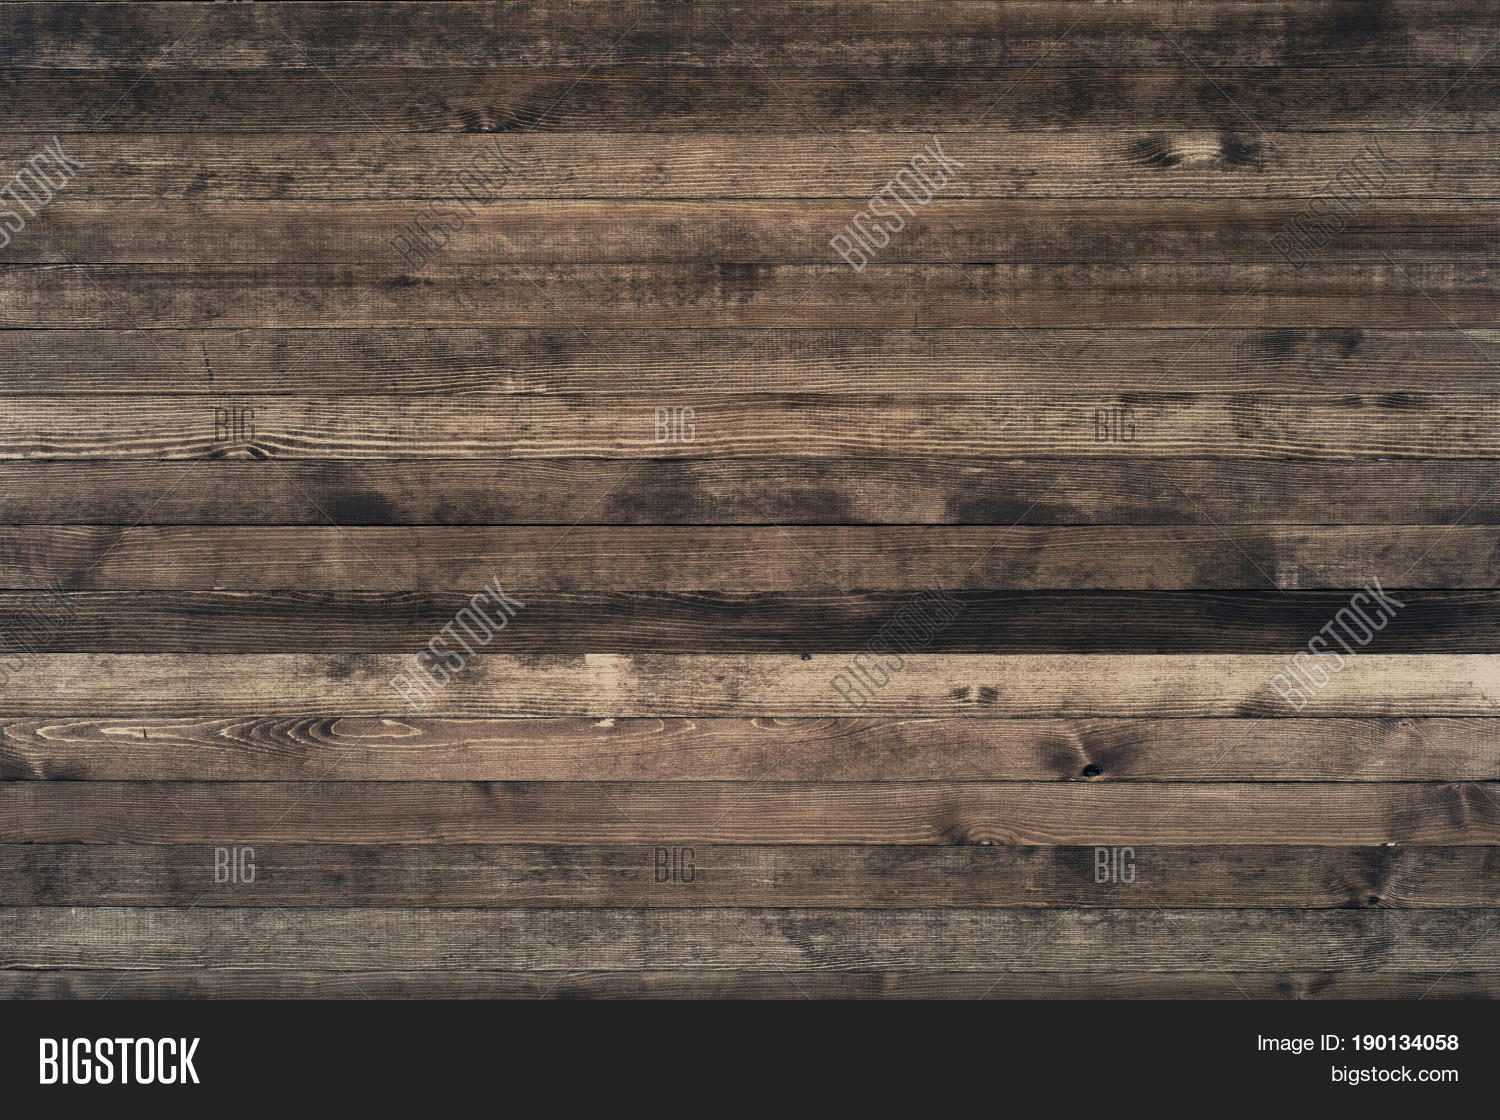 Large Dinner Empty Wood Table Top. Wood Table Texture Background. Plank  Board Of Wood